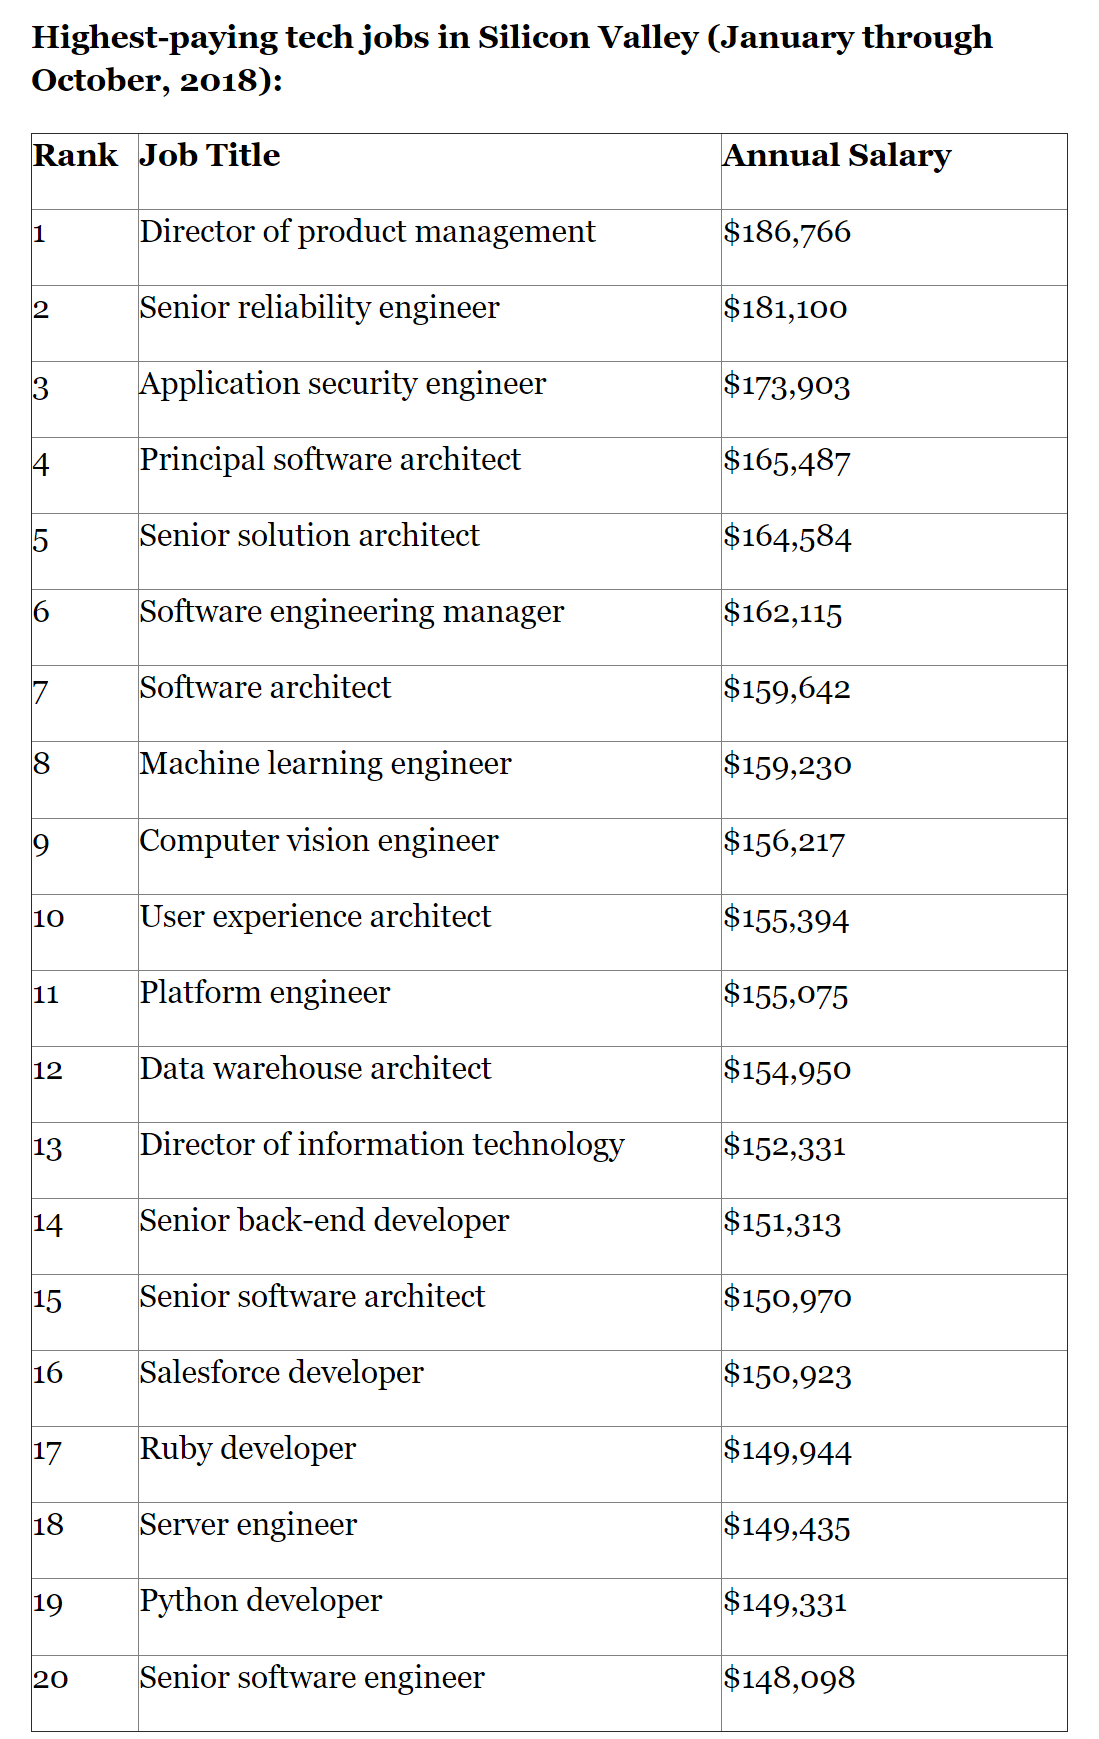 Highestpaying tech jobs in Silicon Valley (January